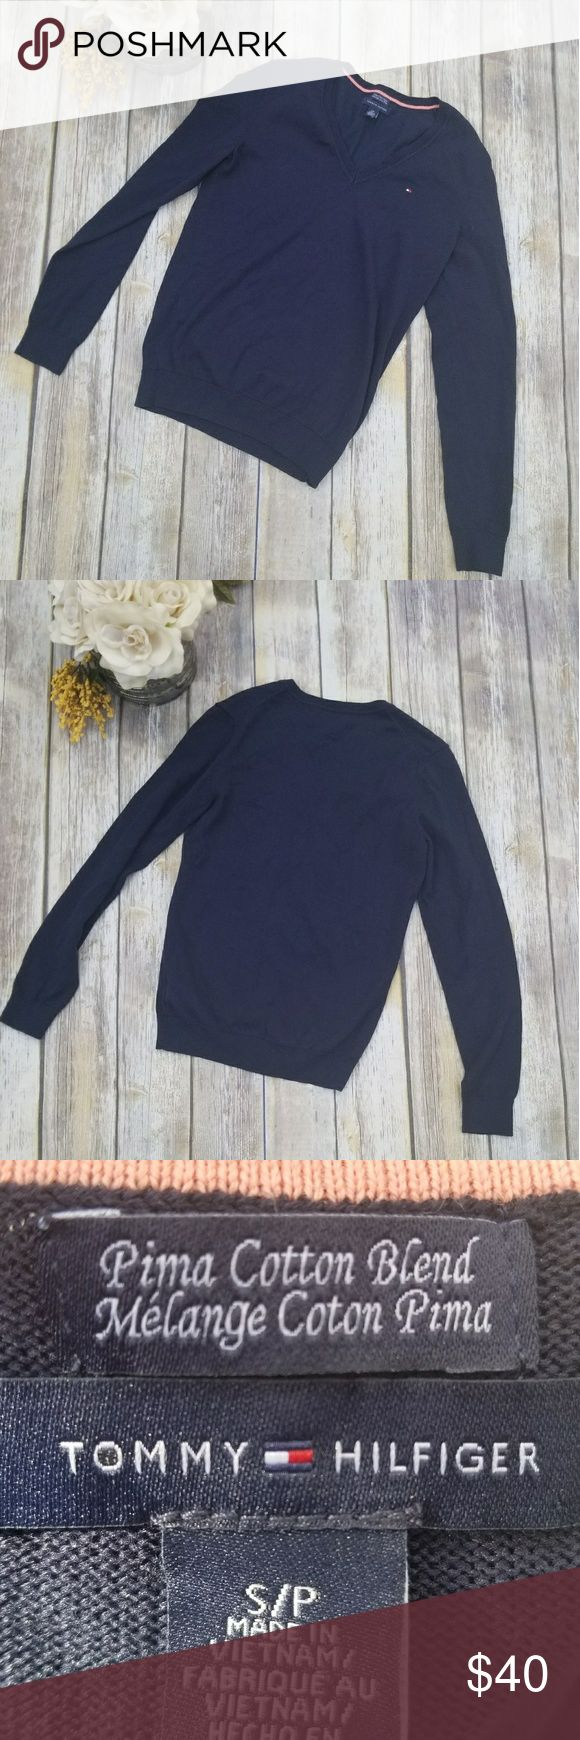 """🎉Tommy Hilfiger Navy V Neck Sweater🎉 Classic Tommy Hilfiger Navy Sweater V Neck Size S Great condition  Has Tommy logo on top left corner Bust 32"""" Sleeve 25"""" Length 23""""  Perfectly paired with a Tommy Hilfiger denim jacket, jeans, and boots! Tommy Hilfiger Sweaters V-Necks"""